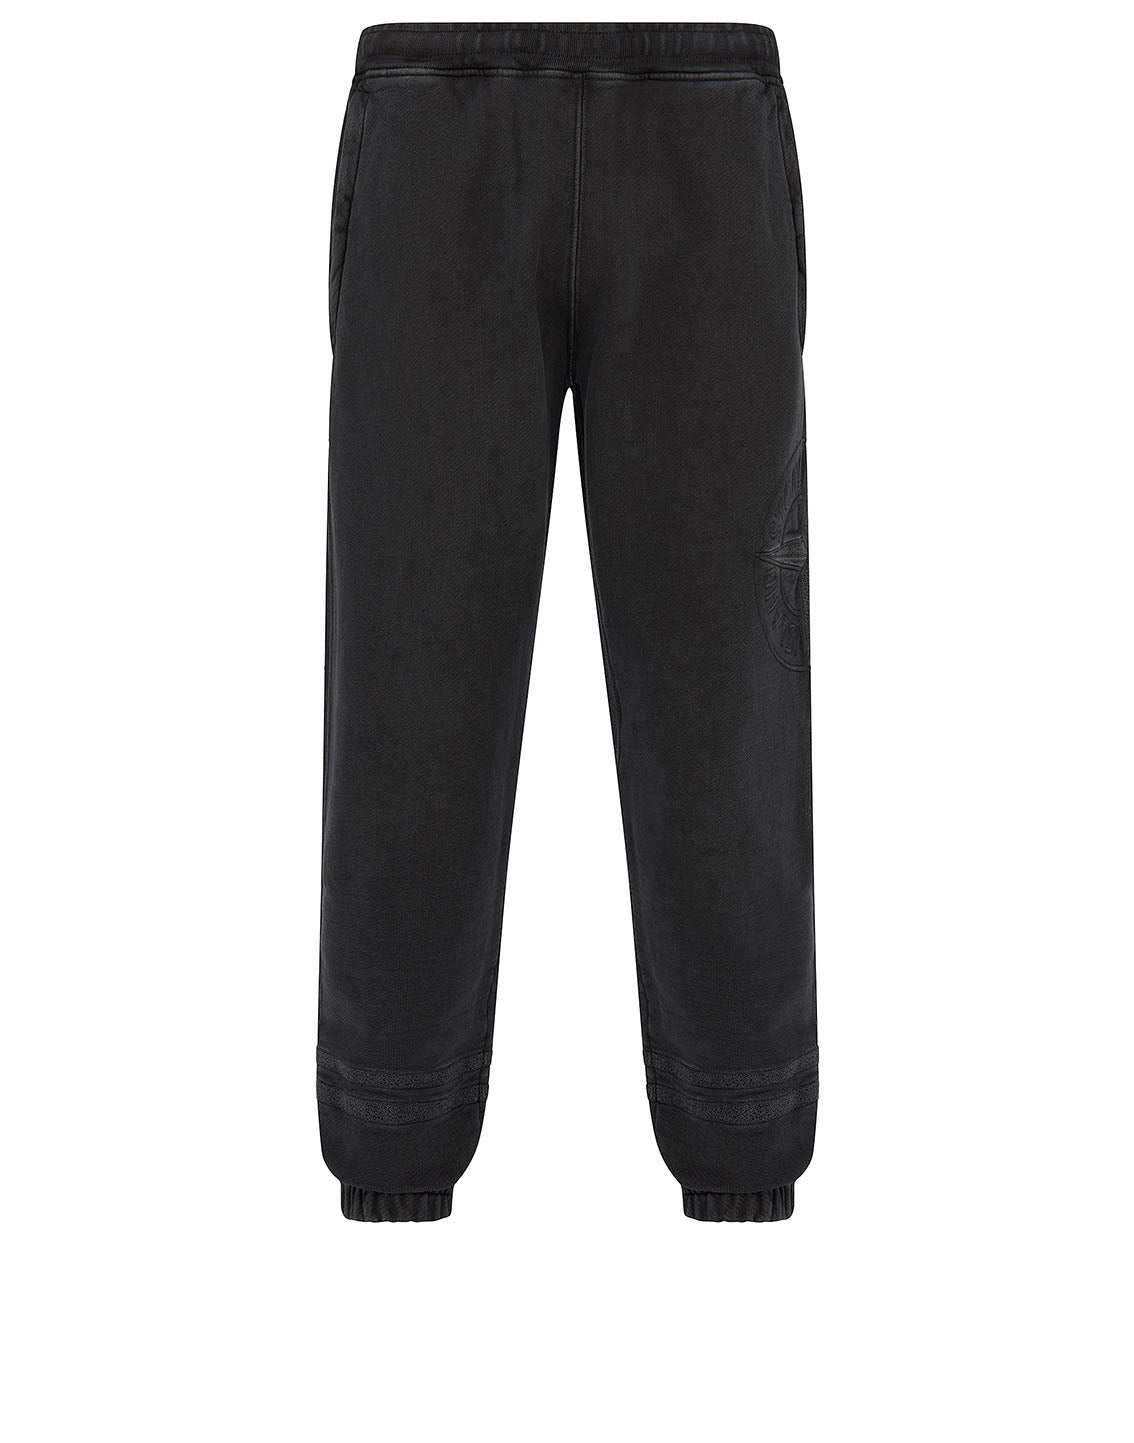 63547 'OLD' DYE TREATMENT Sweatpants in Black